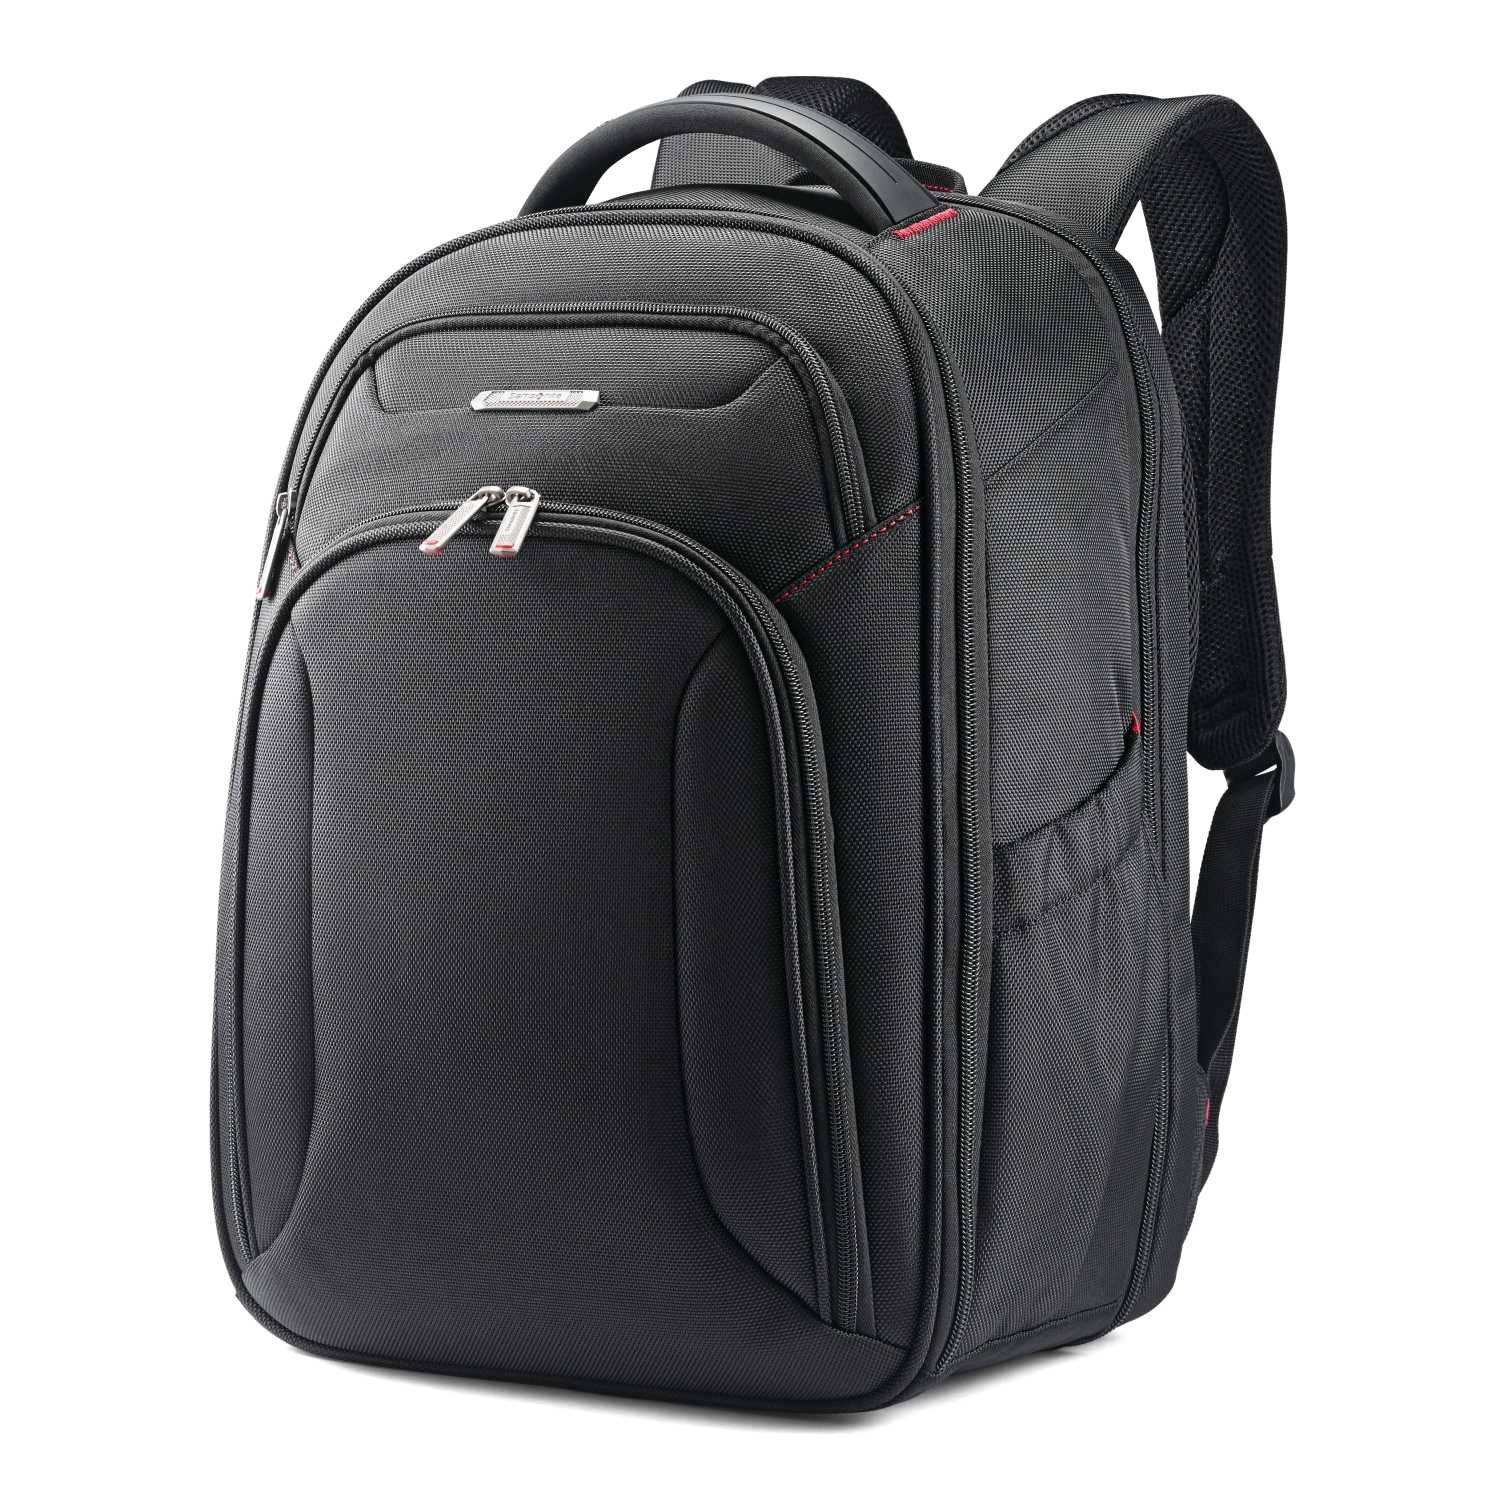 Samsonite 89431-1041 Xenon 3 Large Backpack 15.6-Inch, Black, International Carry-On Samsonite Corporation - CA